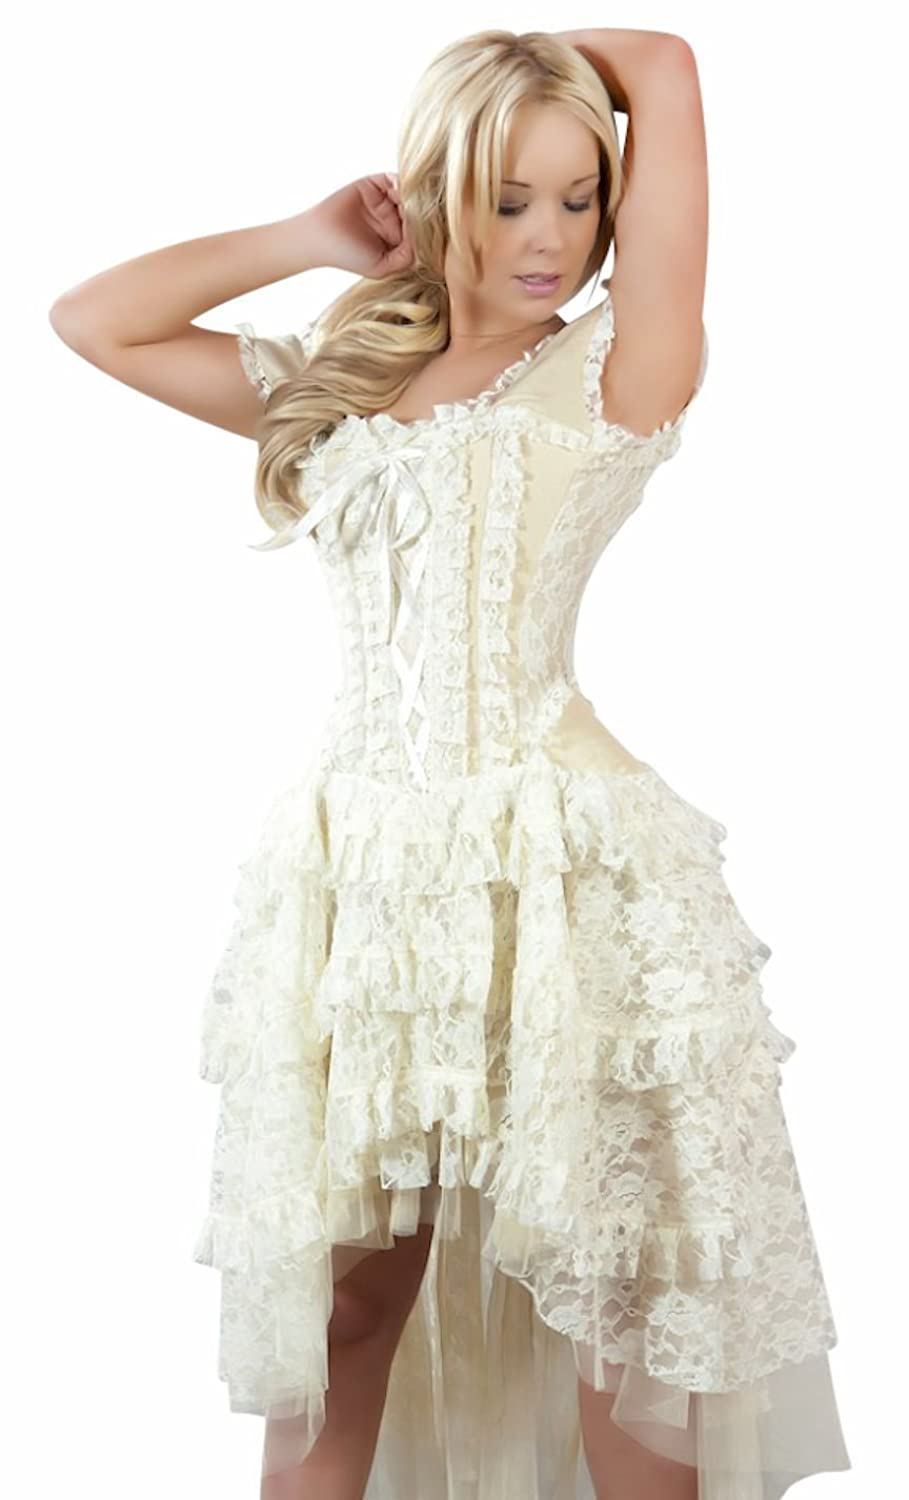 Steampunk Wedding Dresses | Vintage, Victorian, Black Steampunk Corset Dress $139.99 AT vintagedancer.com